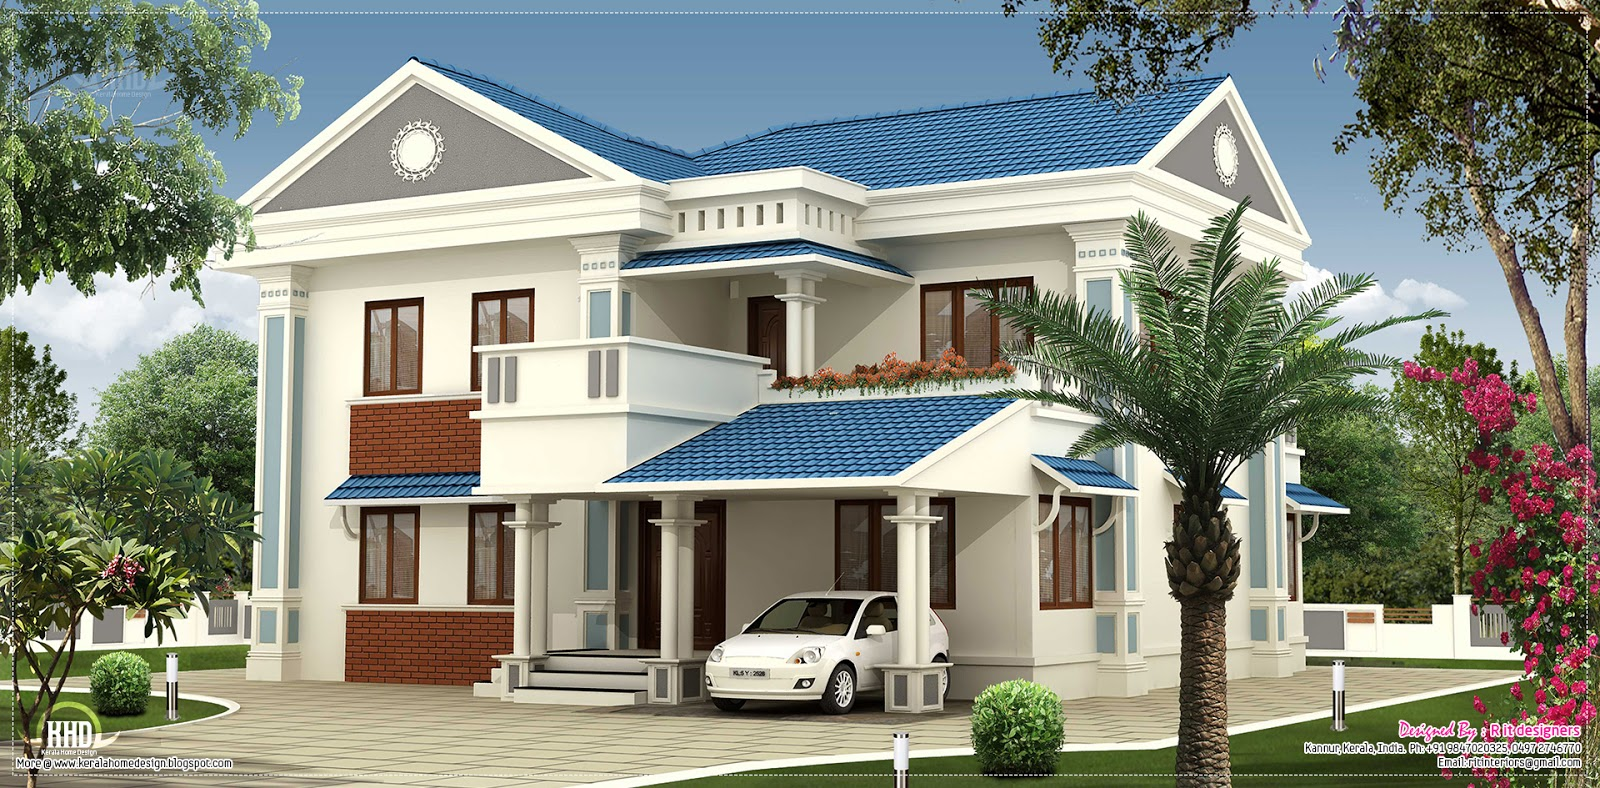 2000 beautiful villa elevation design kerala for Best 2000 sq ft home design